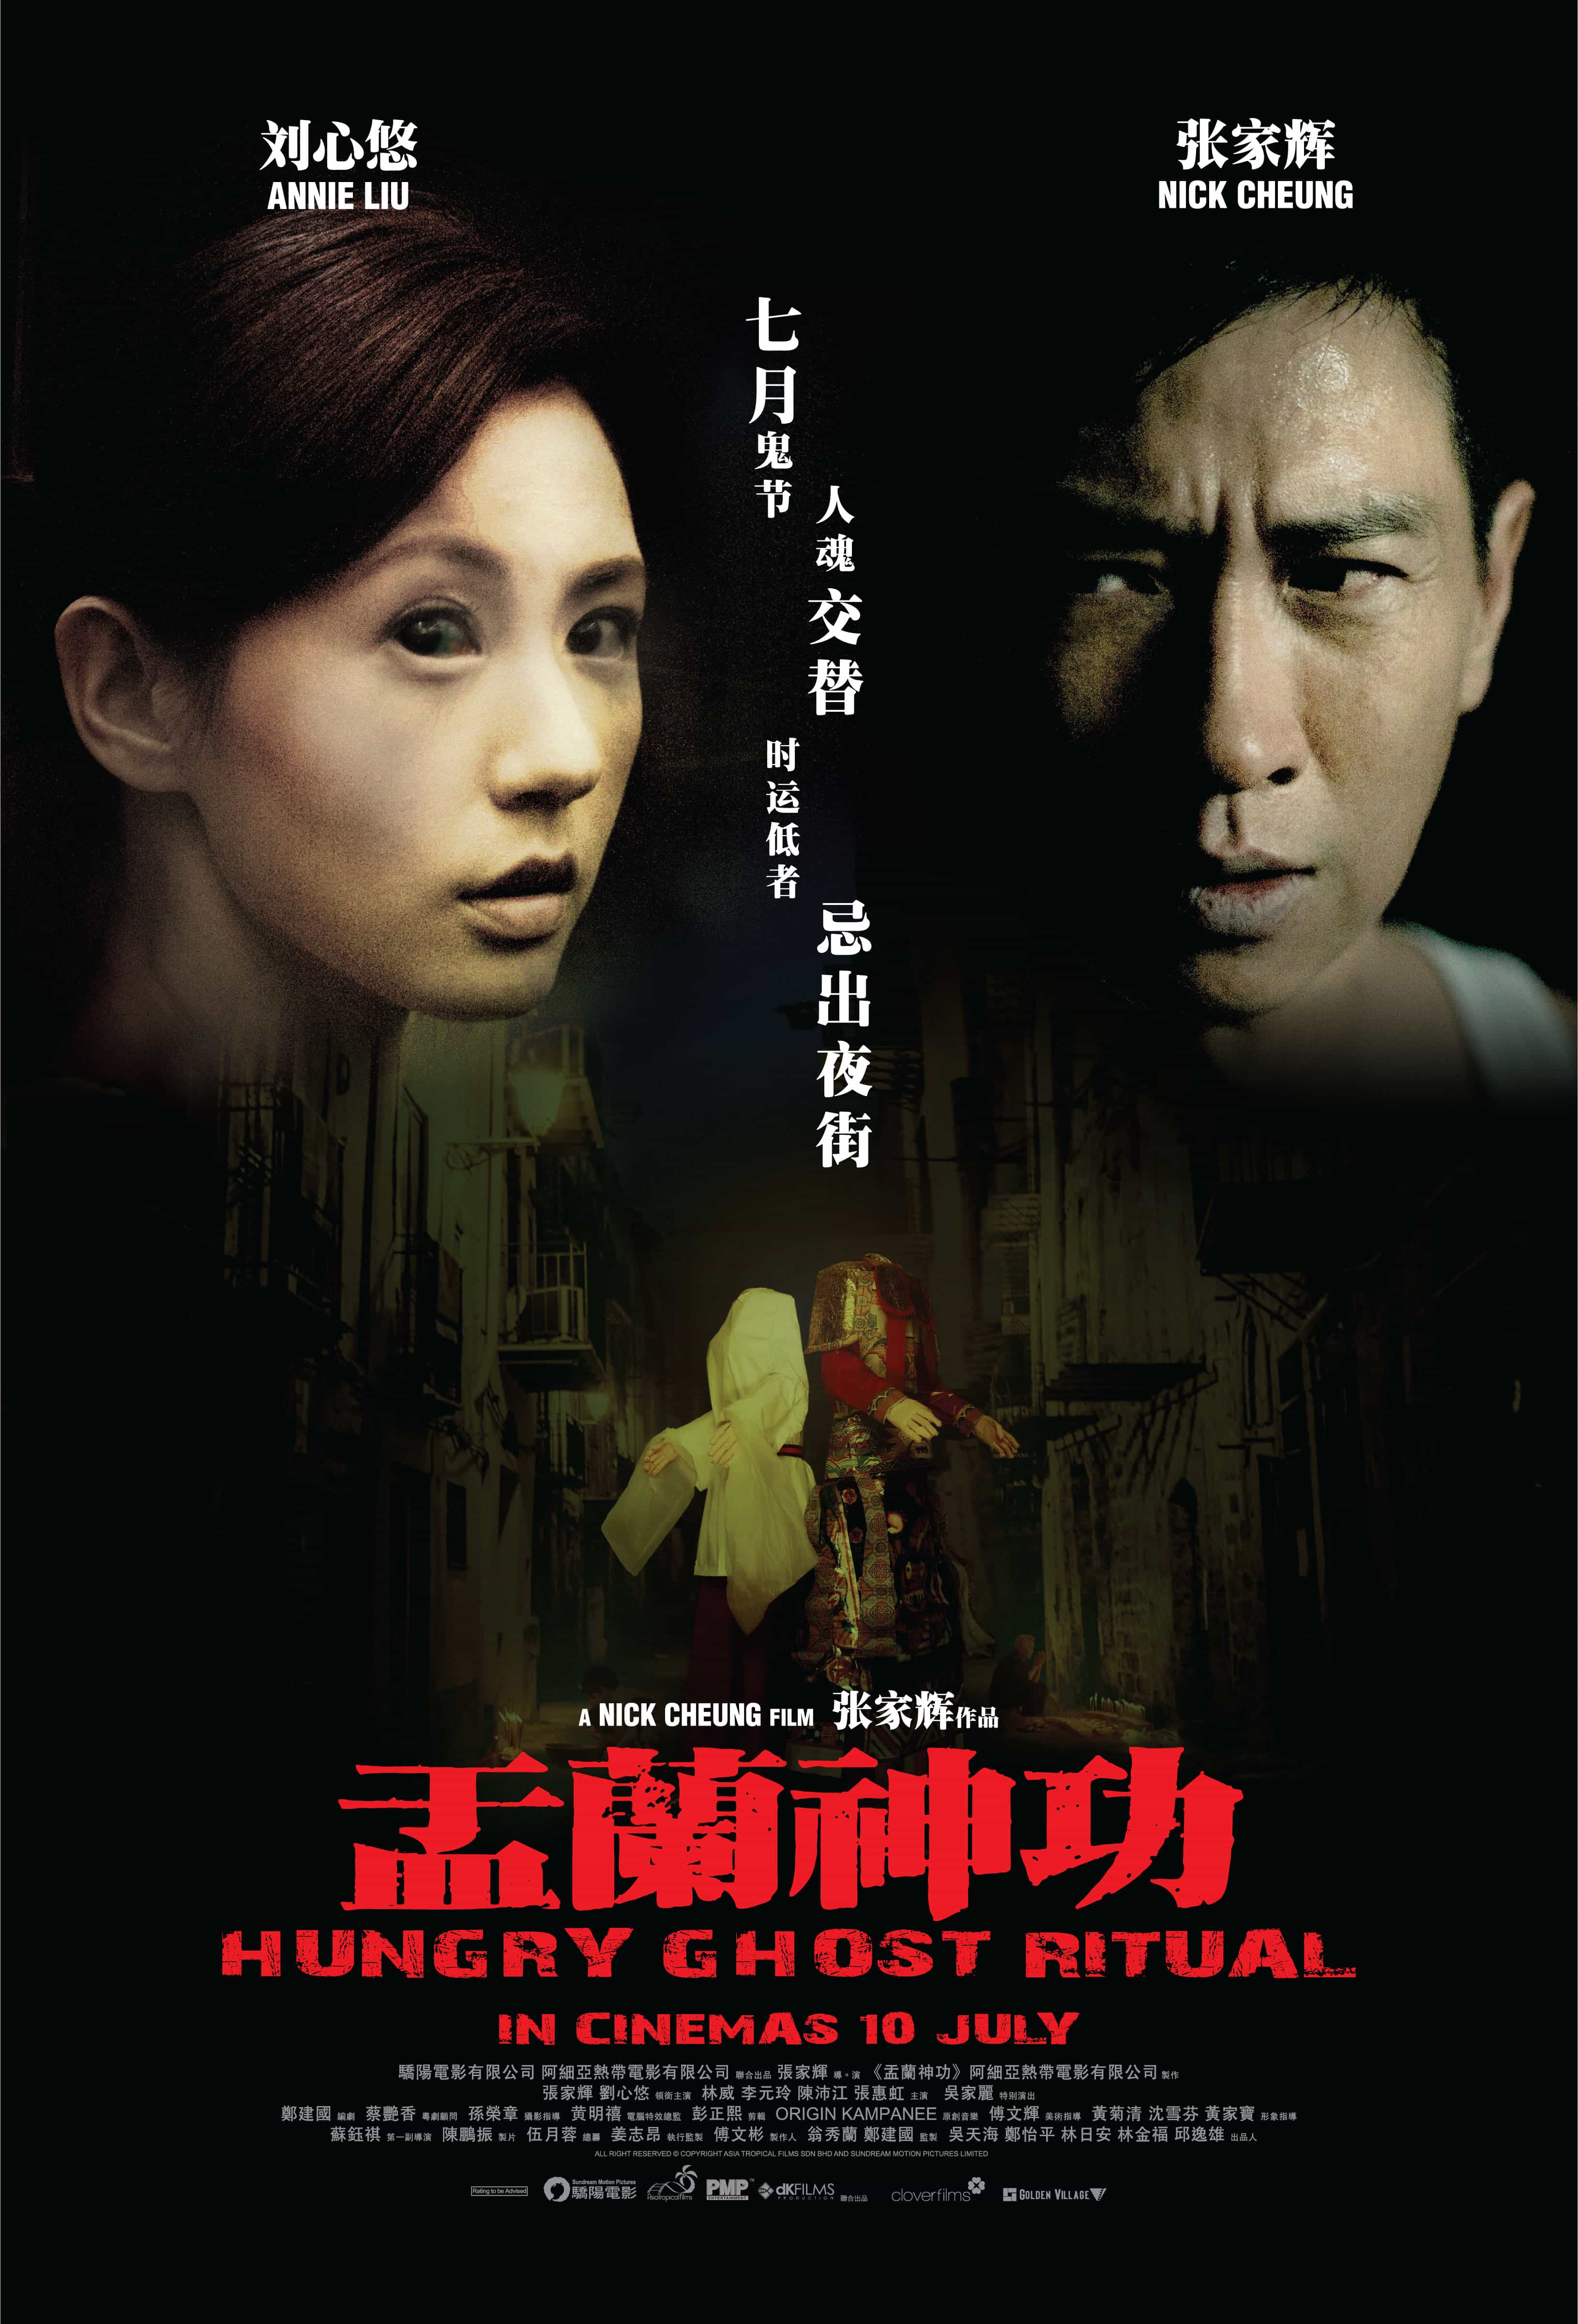 HUNGRY GHOST RITUAL (盂兰神功) – Review